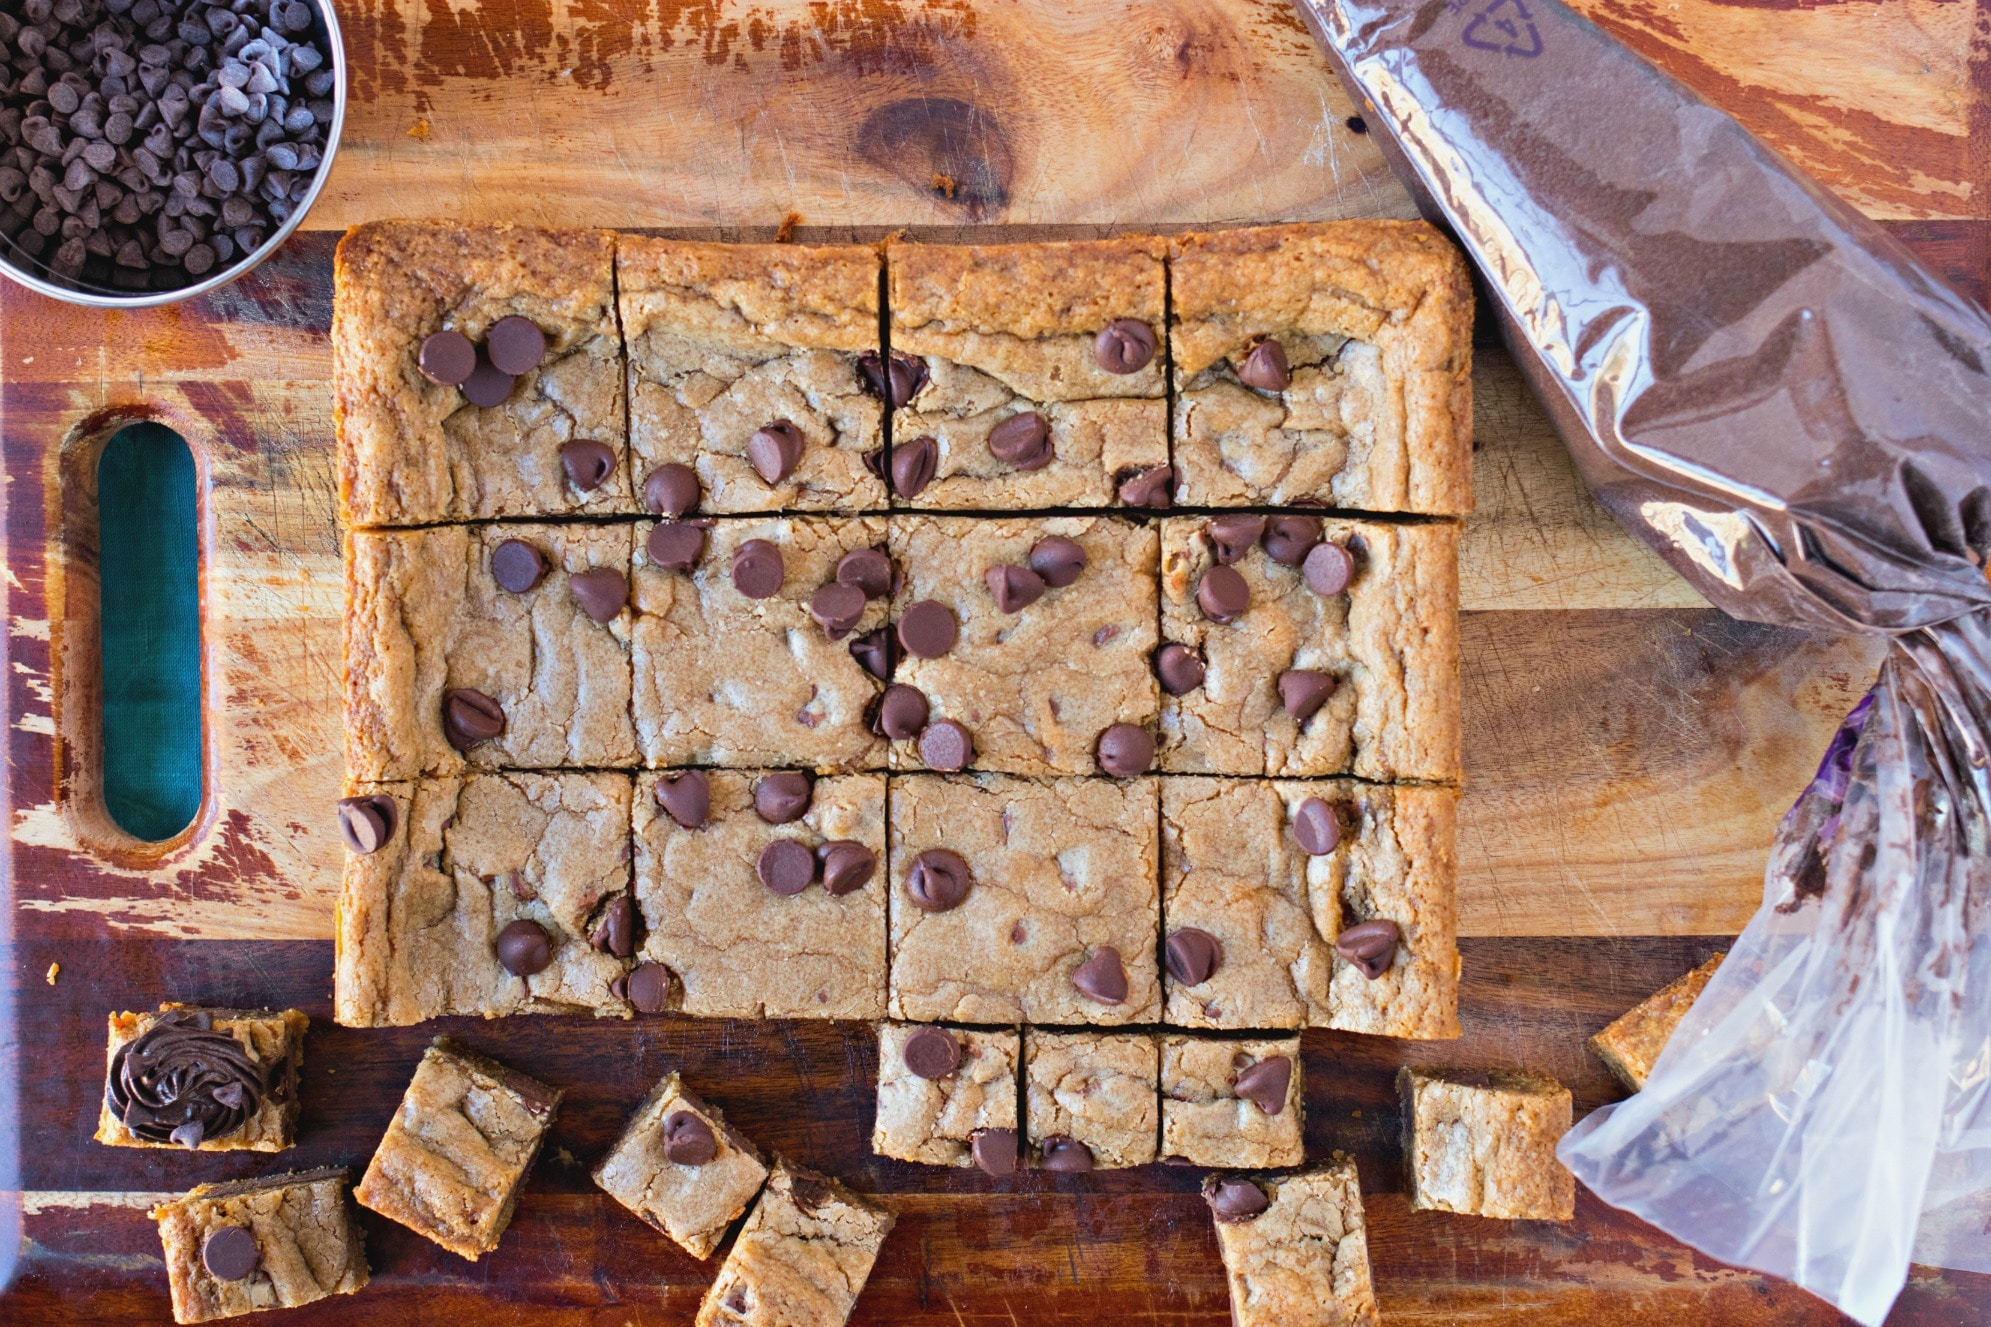 Chocolate Chip Cookie square cut into smaller squares